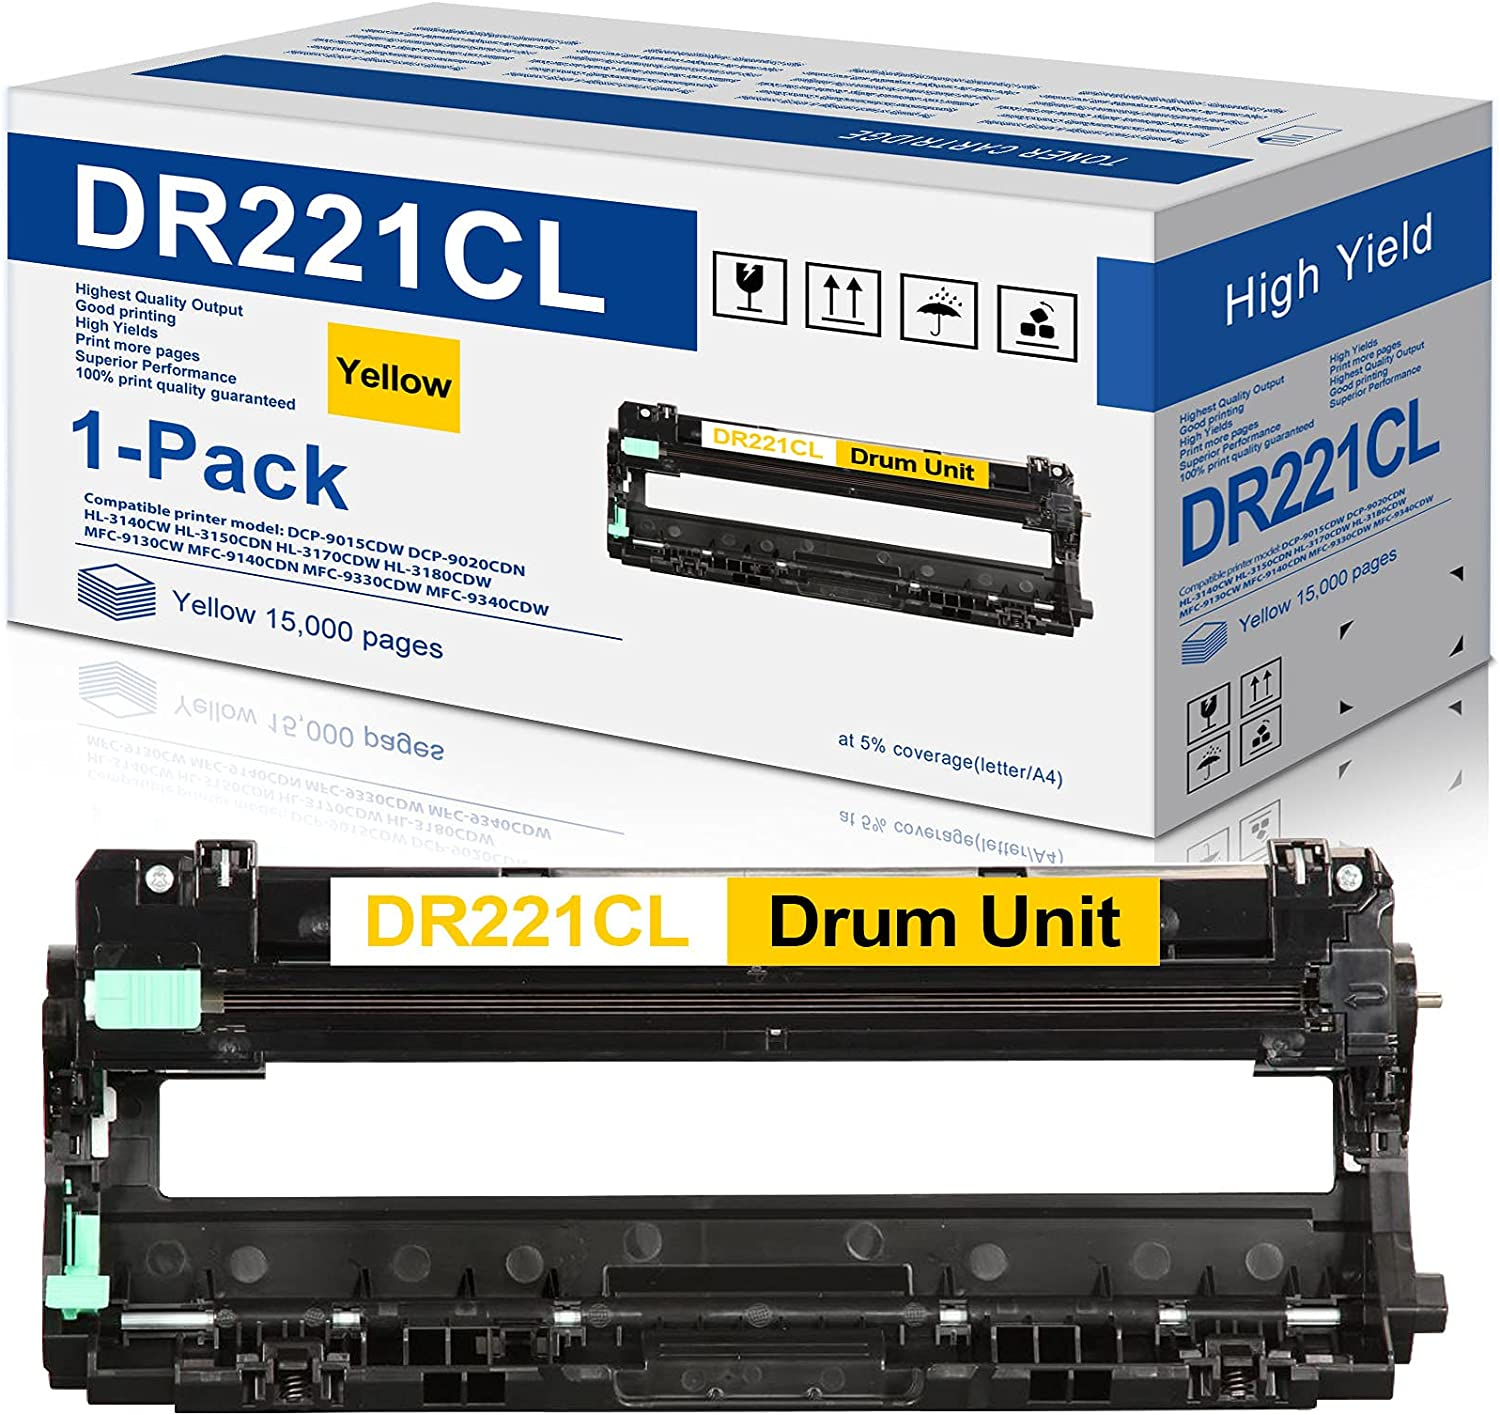 1-Pack Yellow DR221CL DR221 Compatible Drum Unit Replacement for Brother HL-3140CW HL-3150CDN HL-3170CDW HL-3180CDW MFC-9140CDN MFC-9330CDW MFC-9340CDW DCP-9015CDW DCP-9020CDN Printer